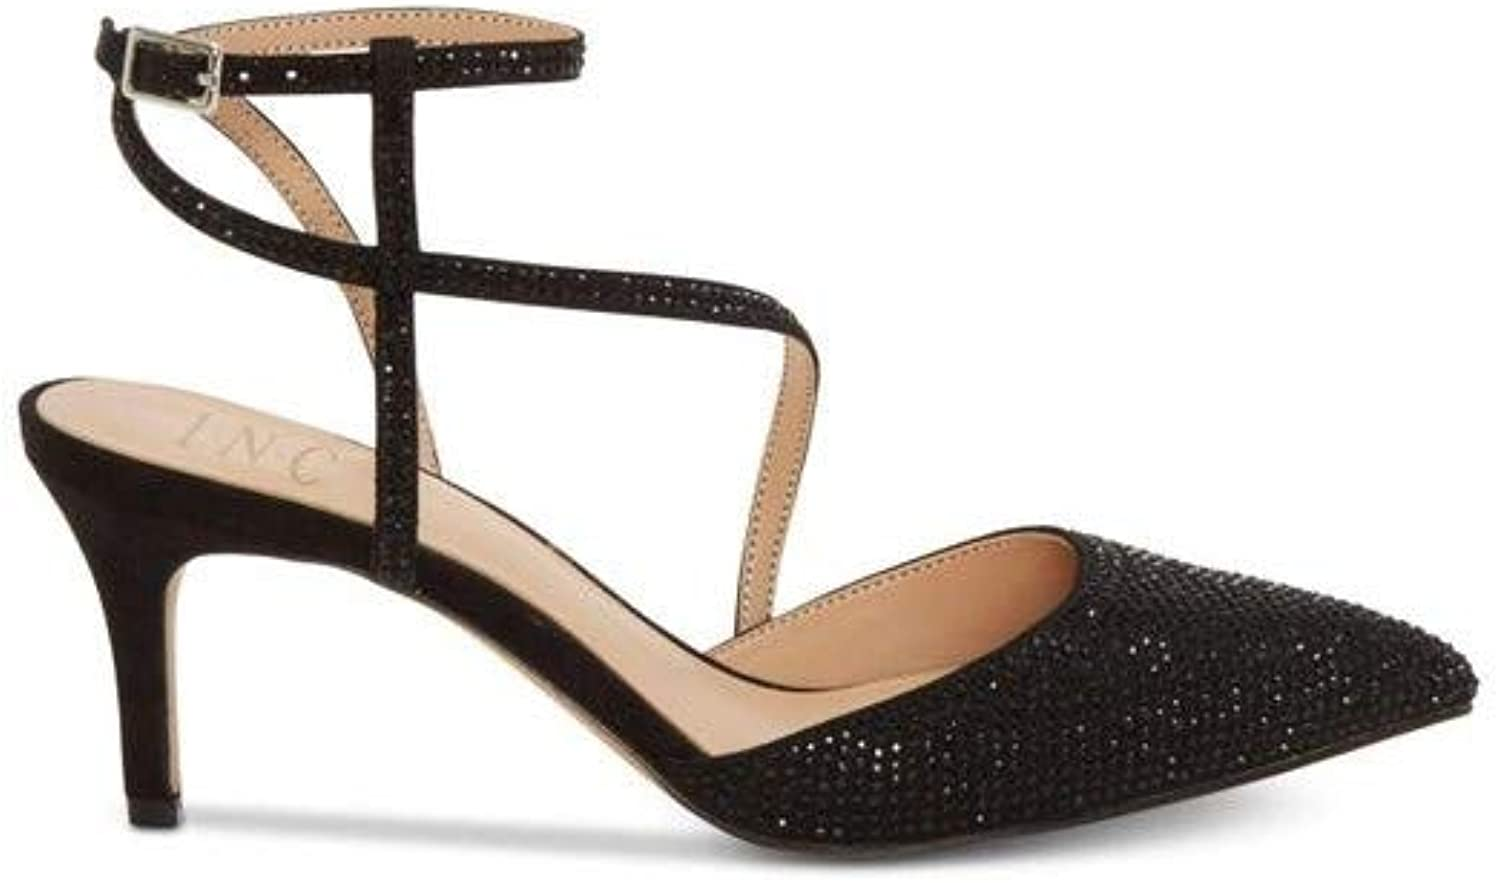 INC International Concepts Womens Lenii Pointed Toe Formal Ankle Strap Sandals